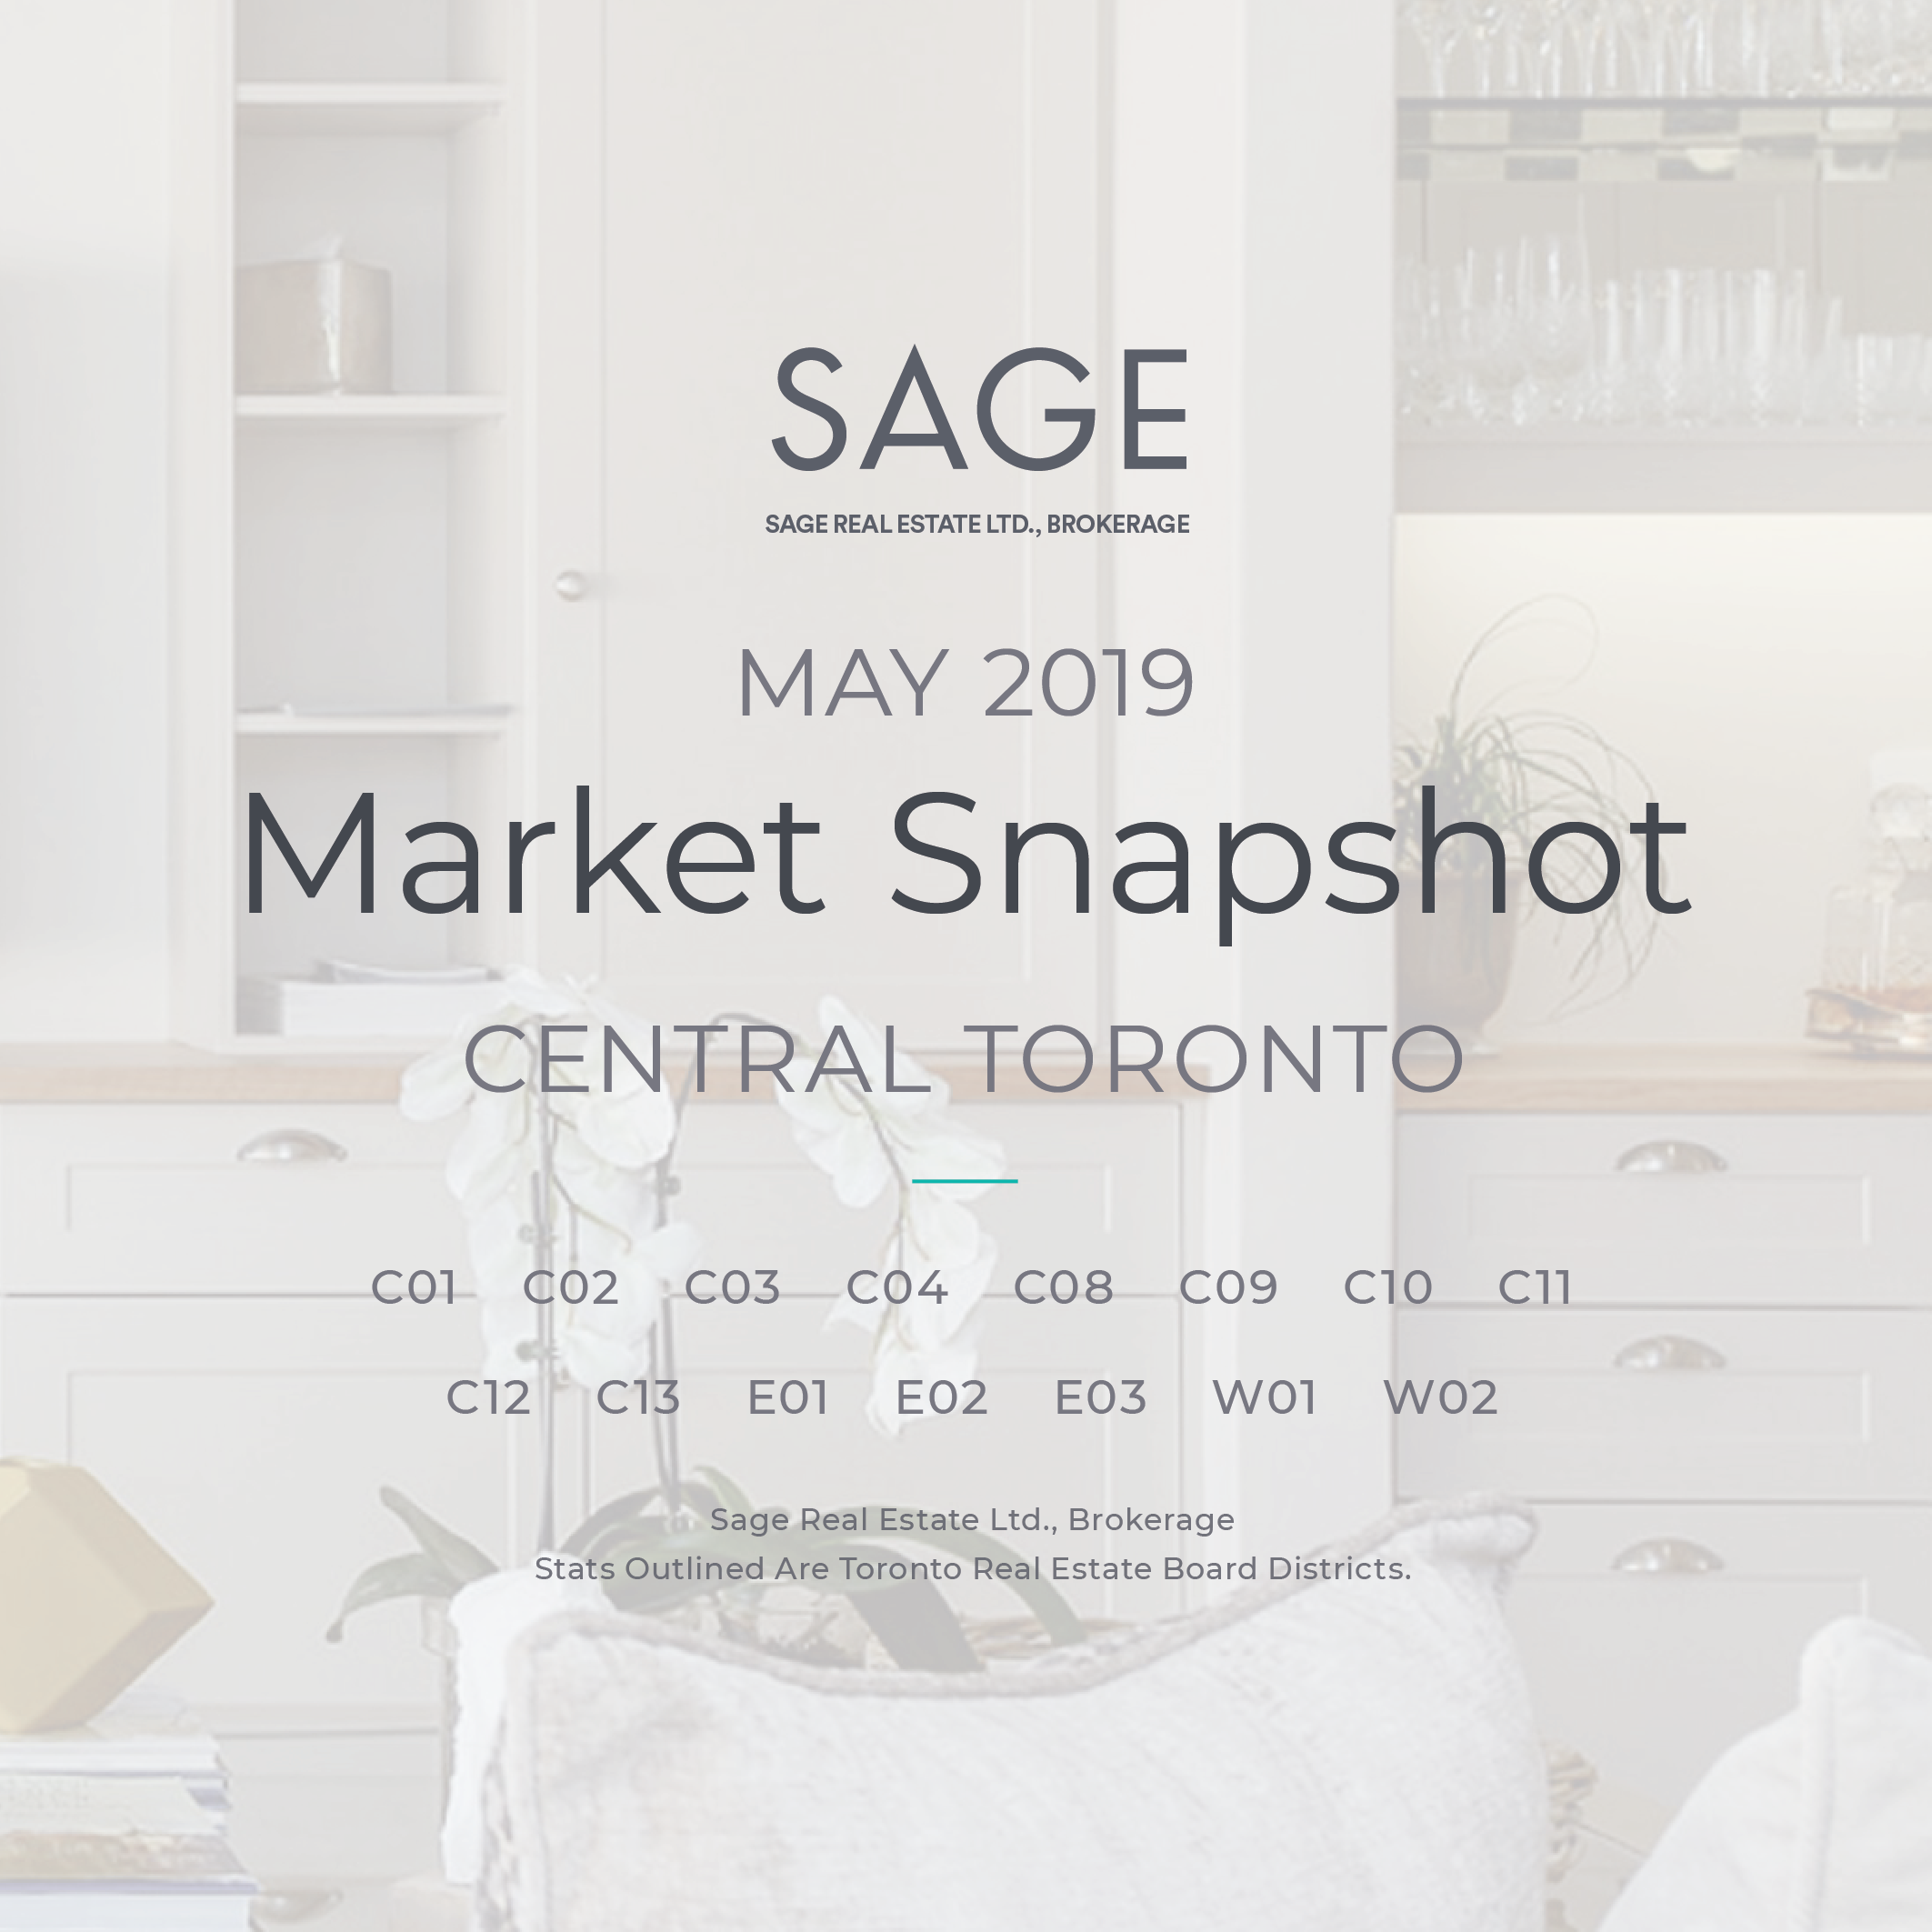 SageStateoftheMarket_May2019_Instagram_Cover.png